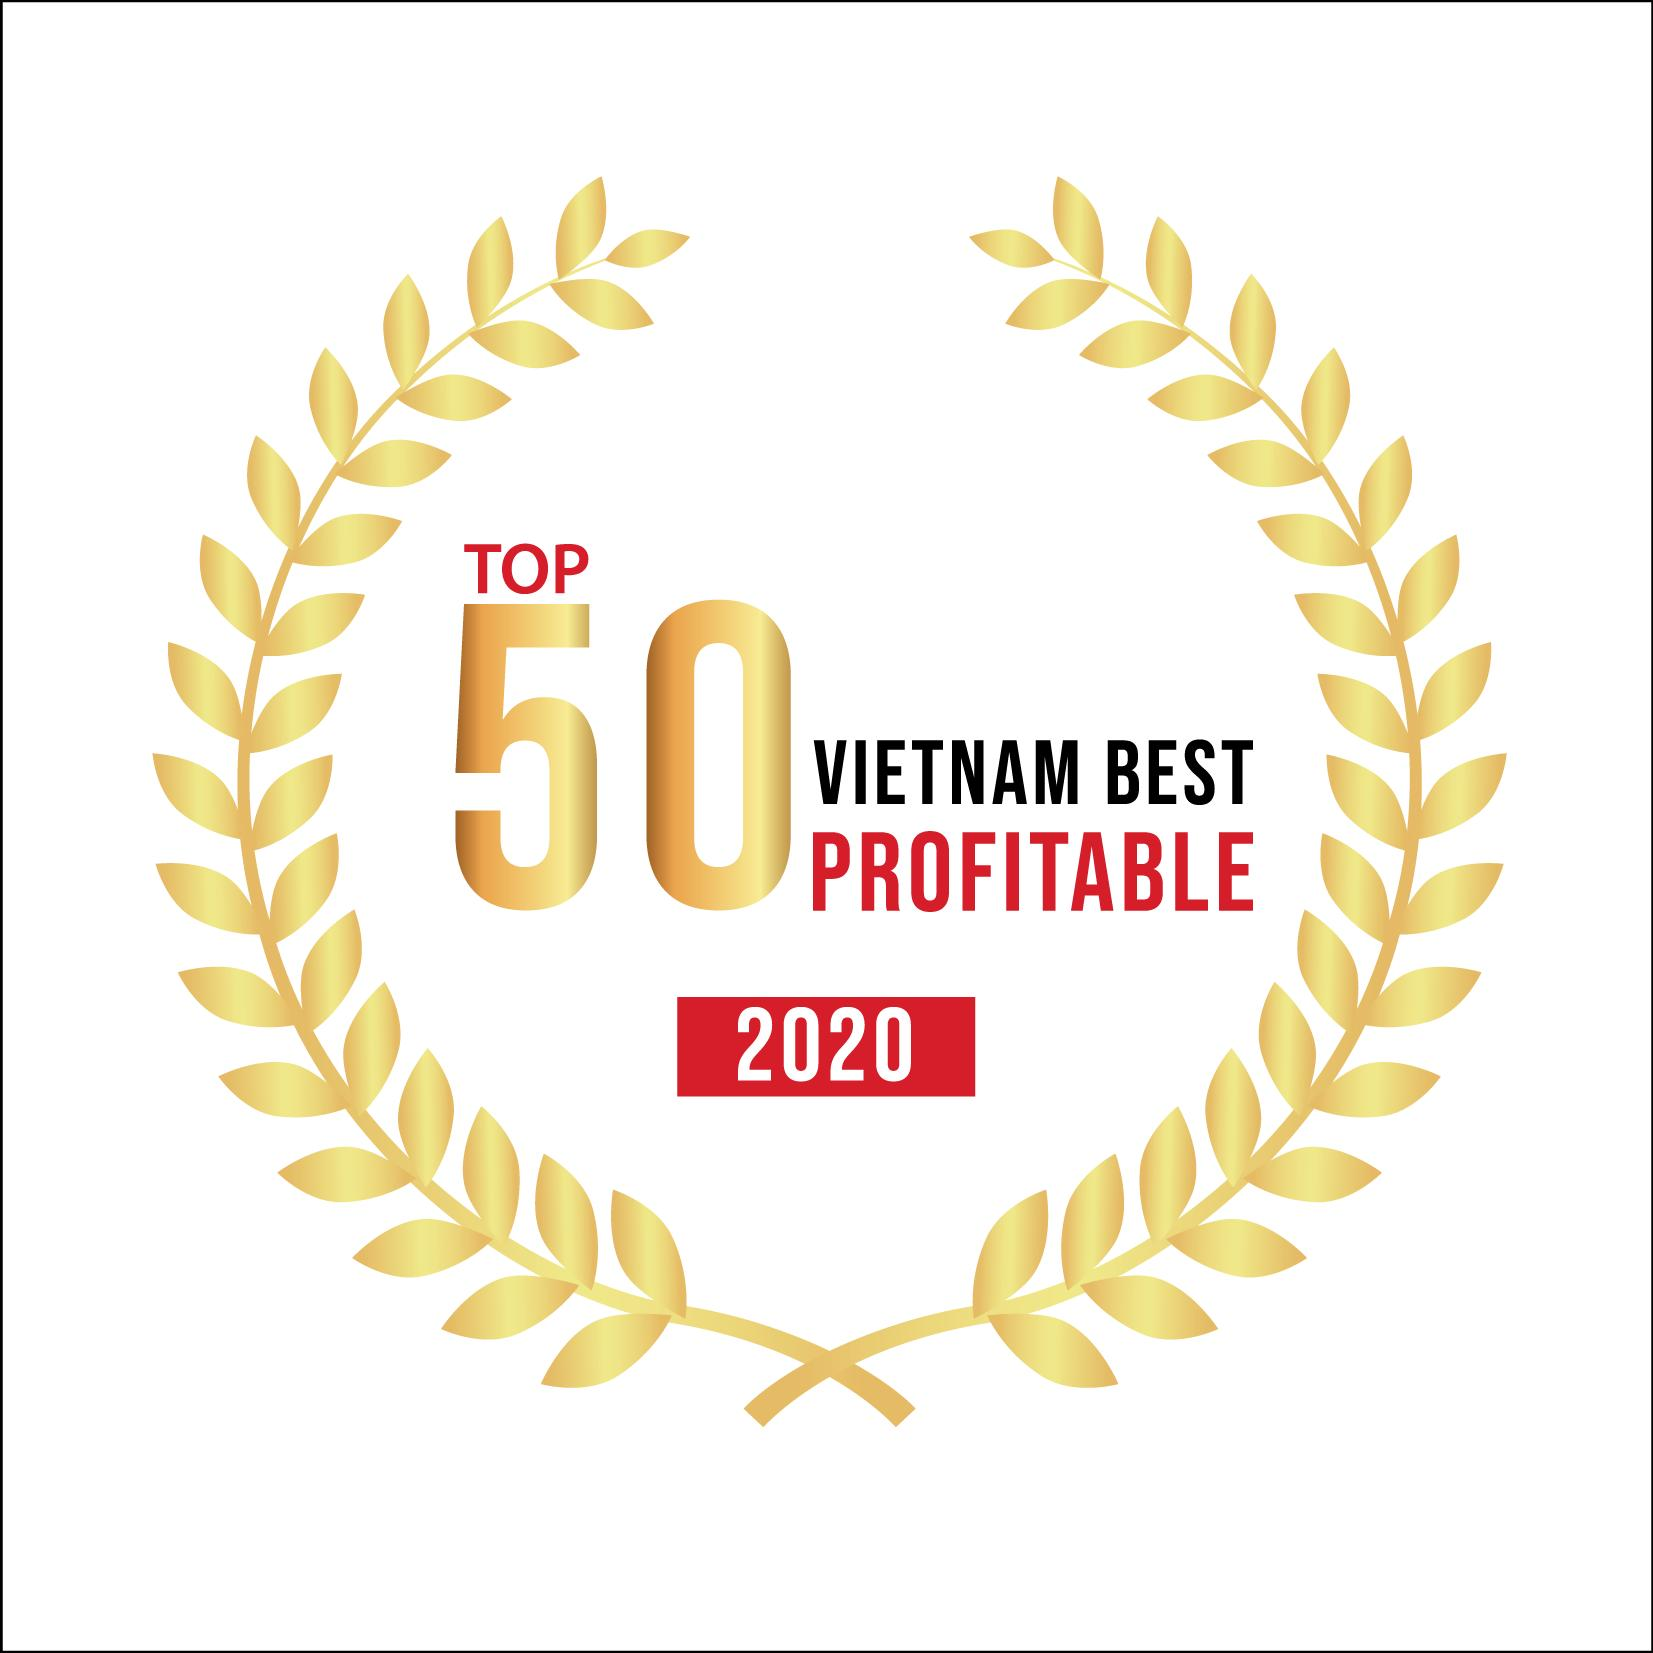 Top 50 Vietnam Best Profitable 2020